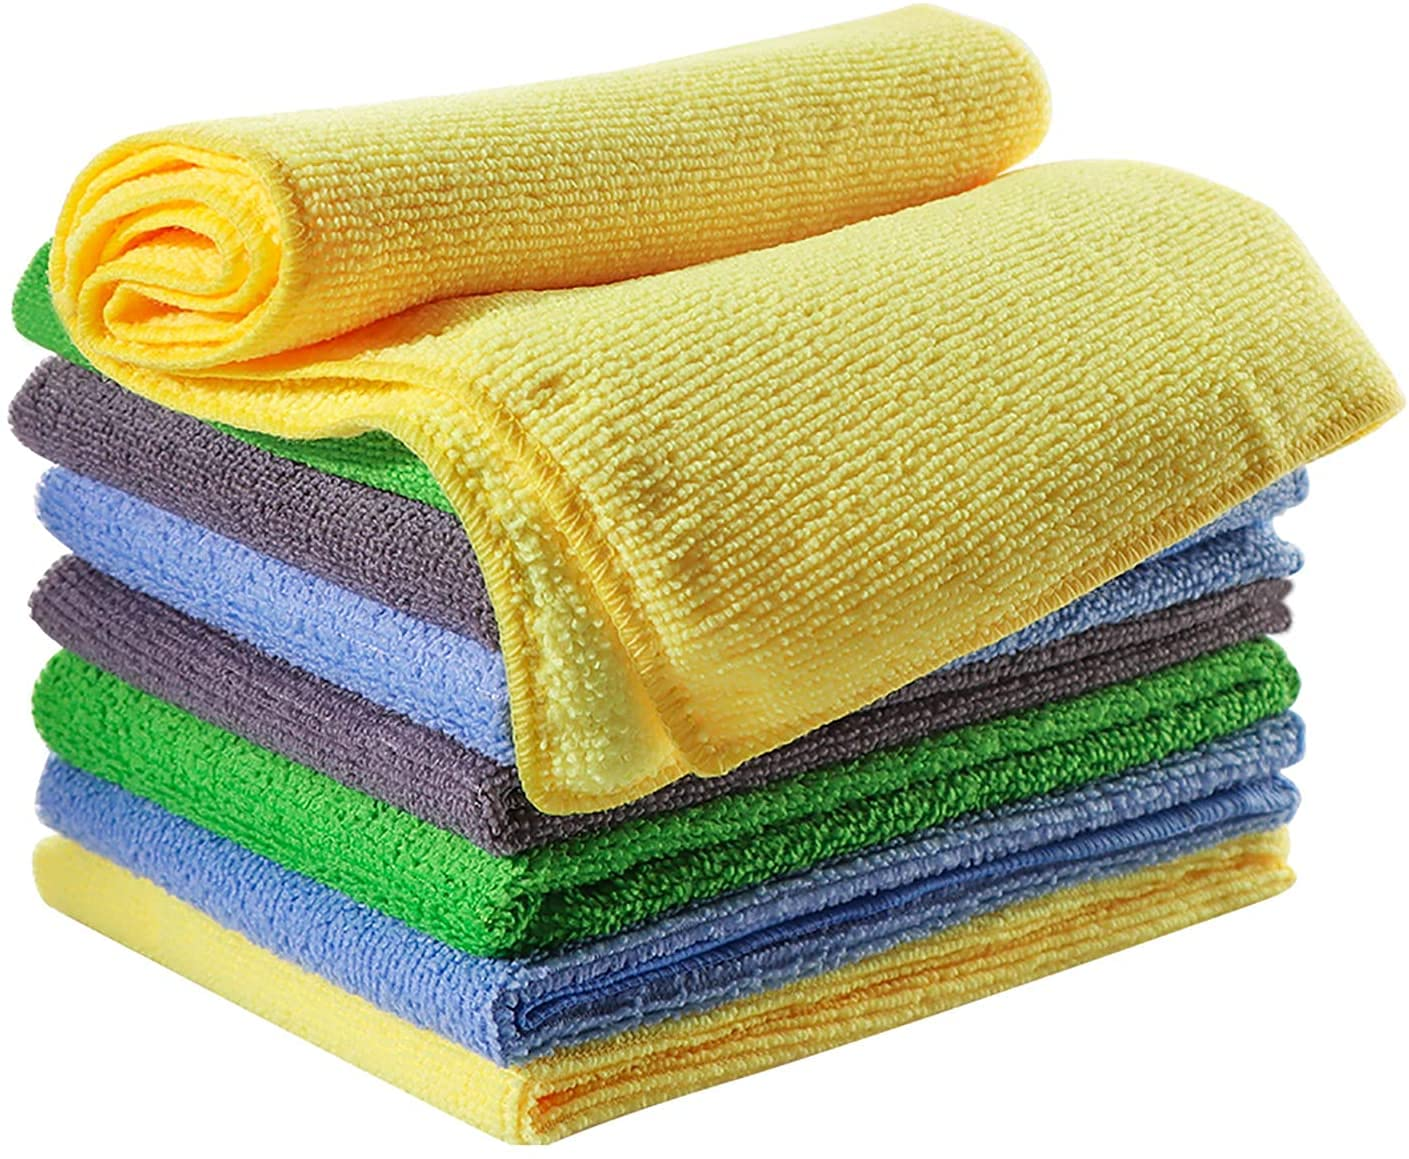 woscher-large-soft-and-quick-drying-car-microfiber-cleaning-cloth-microfiber-cloth-polishing-waxing-auto-detailing-towel-cloth-assorted-40-x-40-cm-pack-of-8